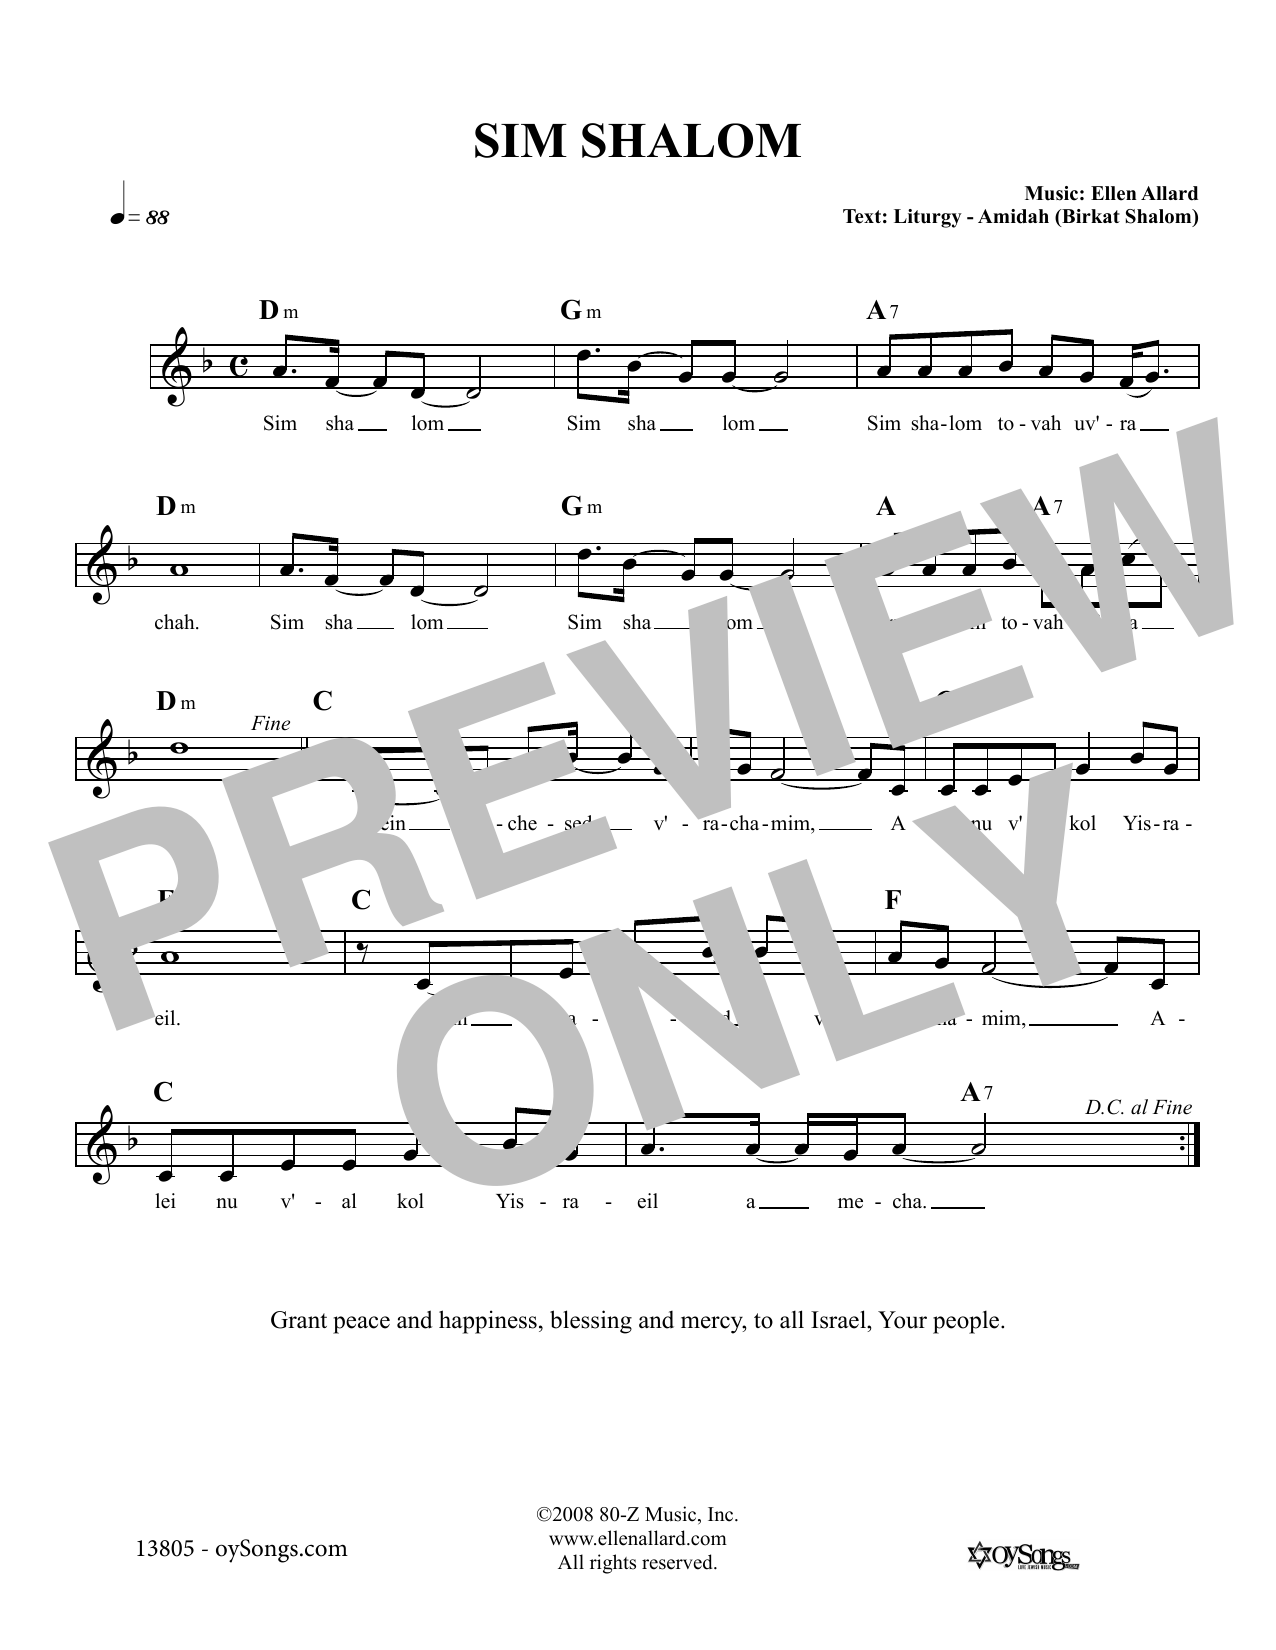 Ellen Allard Sim Shalom sheet music notes and chords. Download Printable PDF.